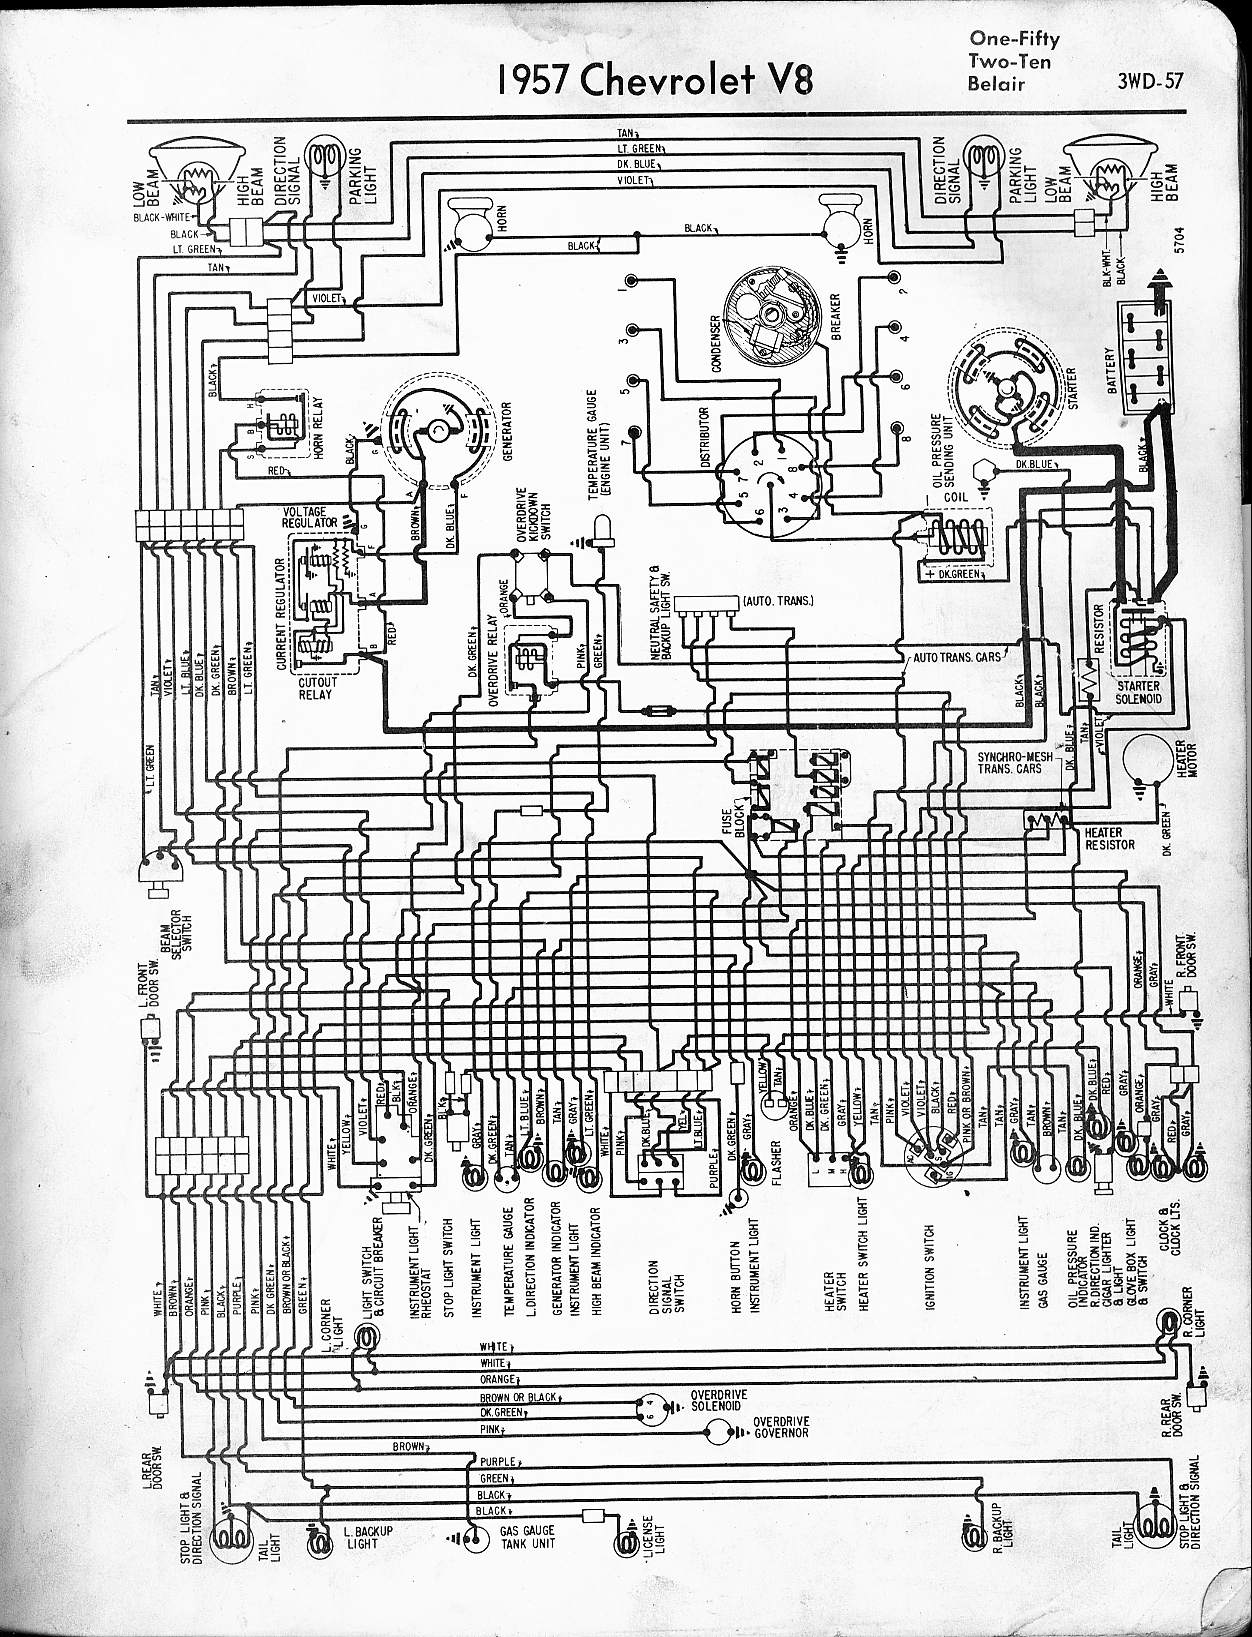 MWireChev57_3WD 057 57 65 chevy wiring diagrams 57 chevy truck wiring harness at n-0.co